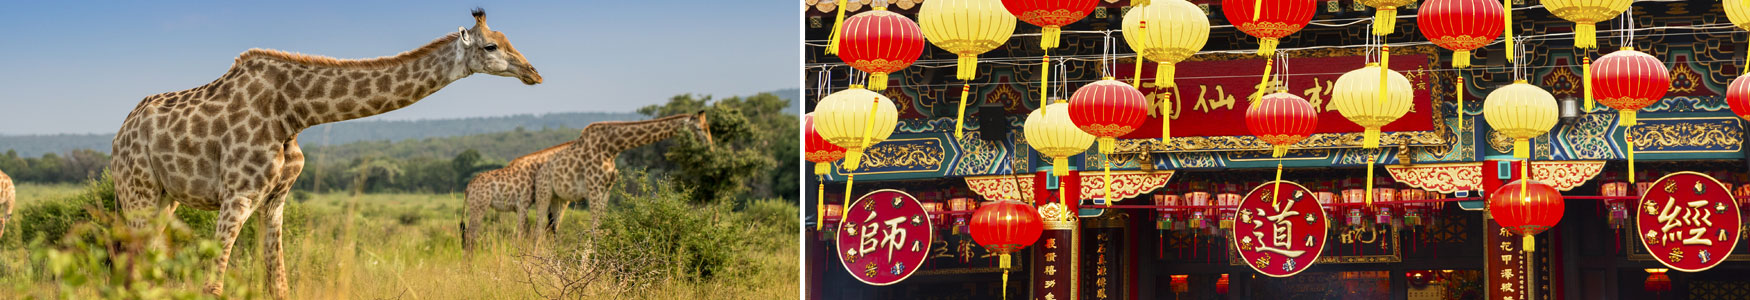 Coverage Highlights